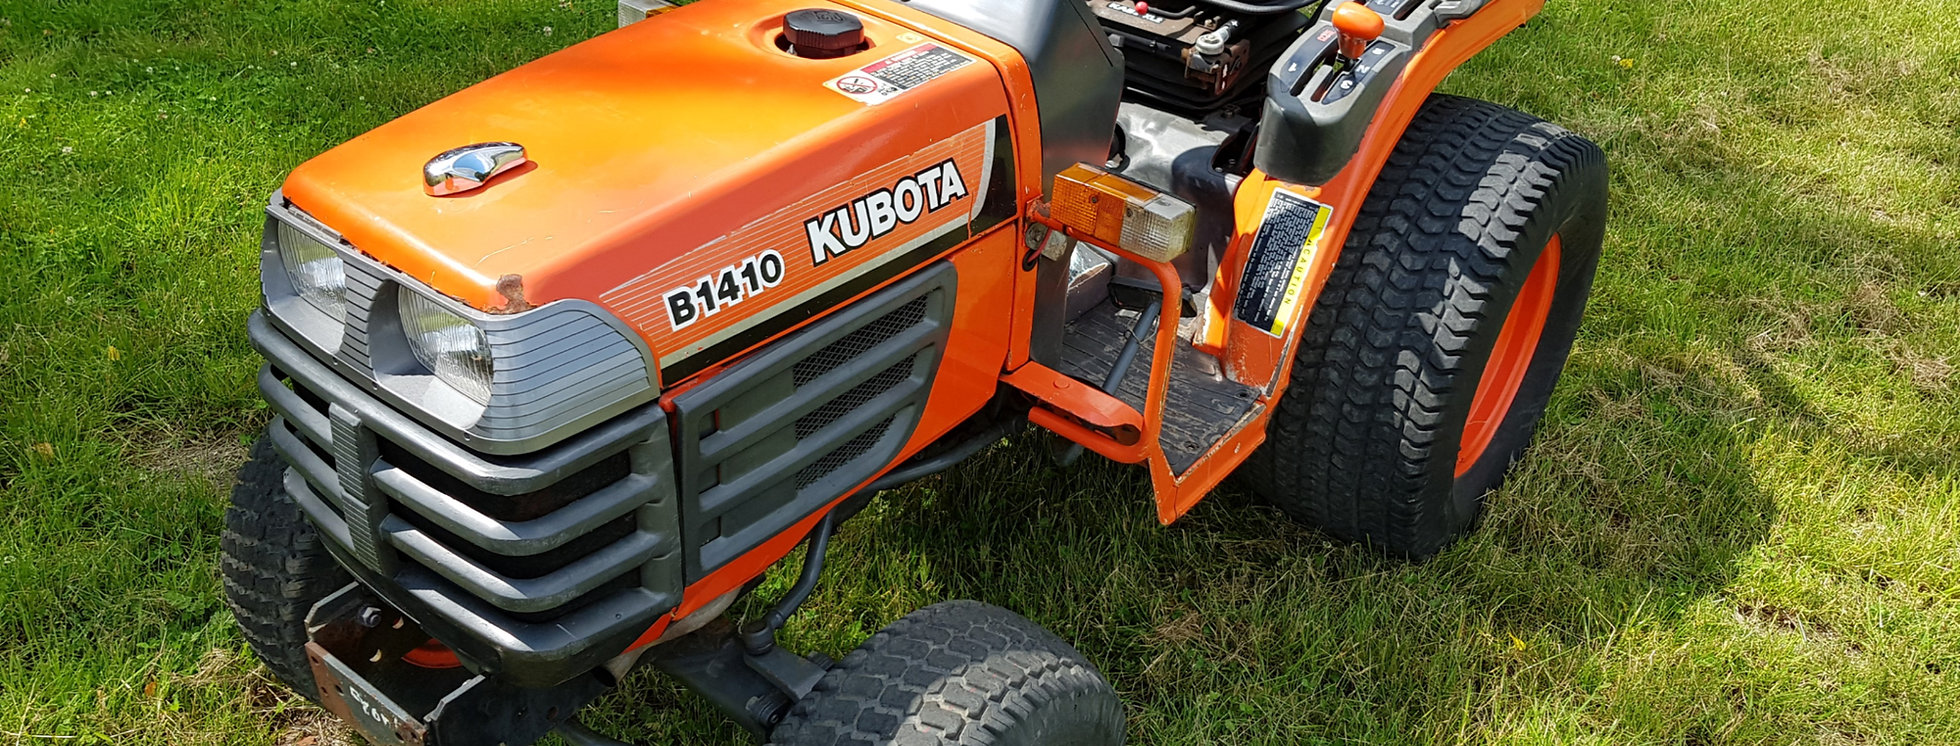 Kubota Compact Tractor B1410D   Compact Tractors For Sale UK